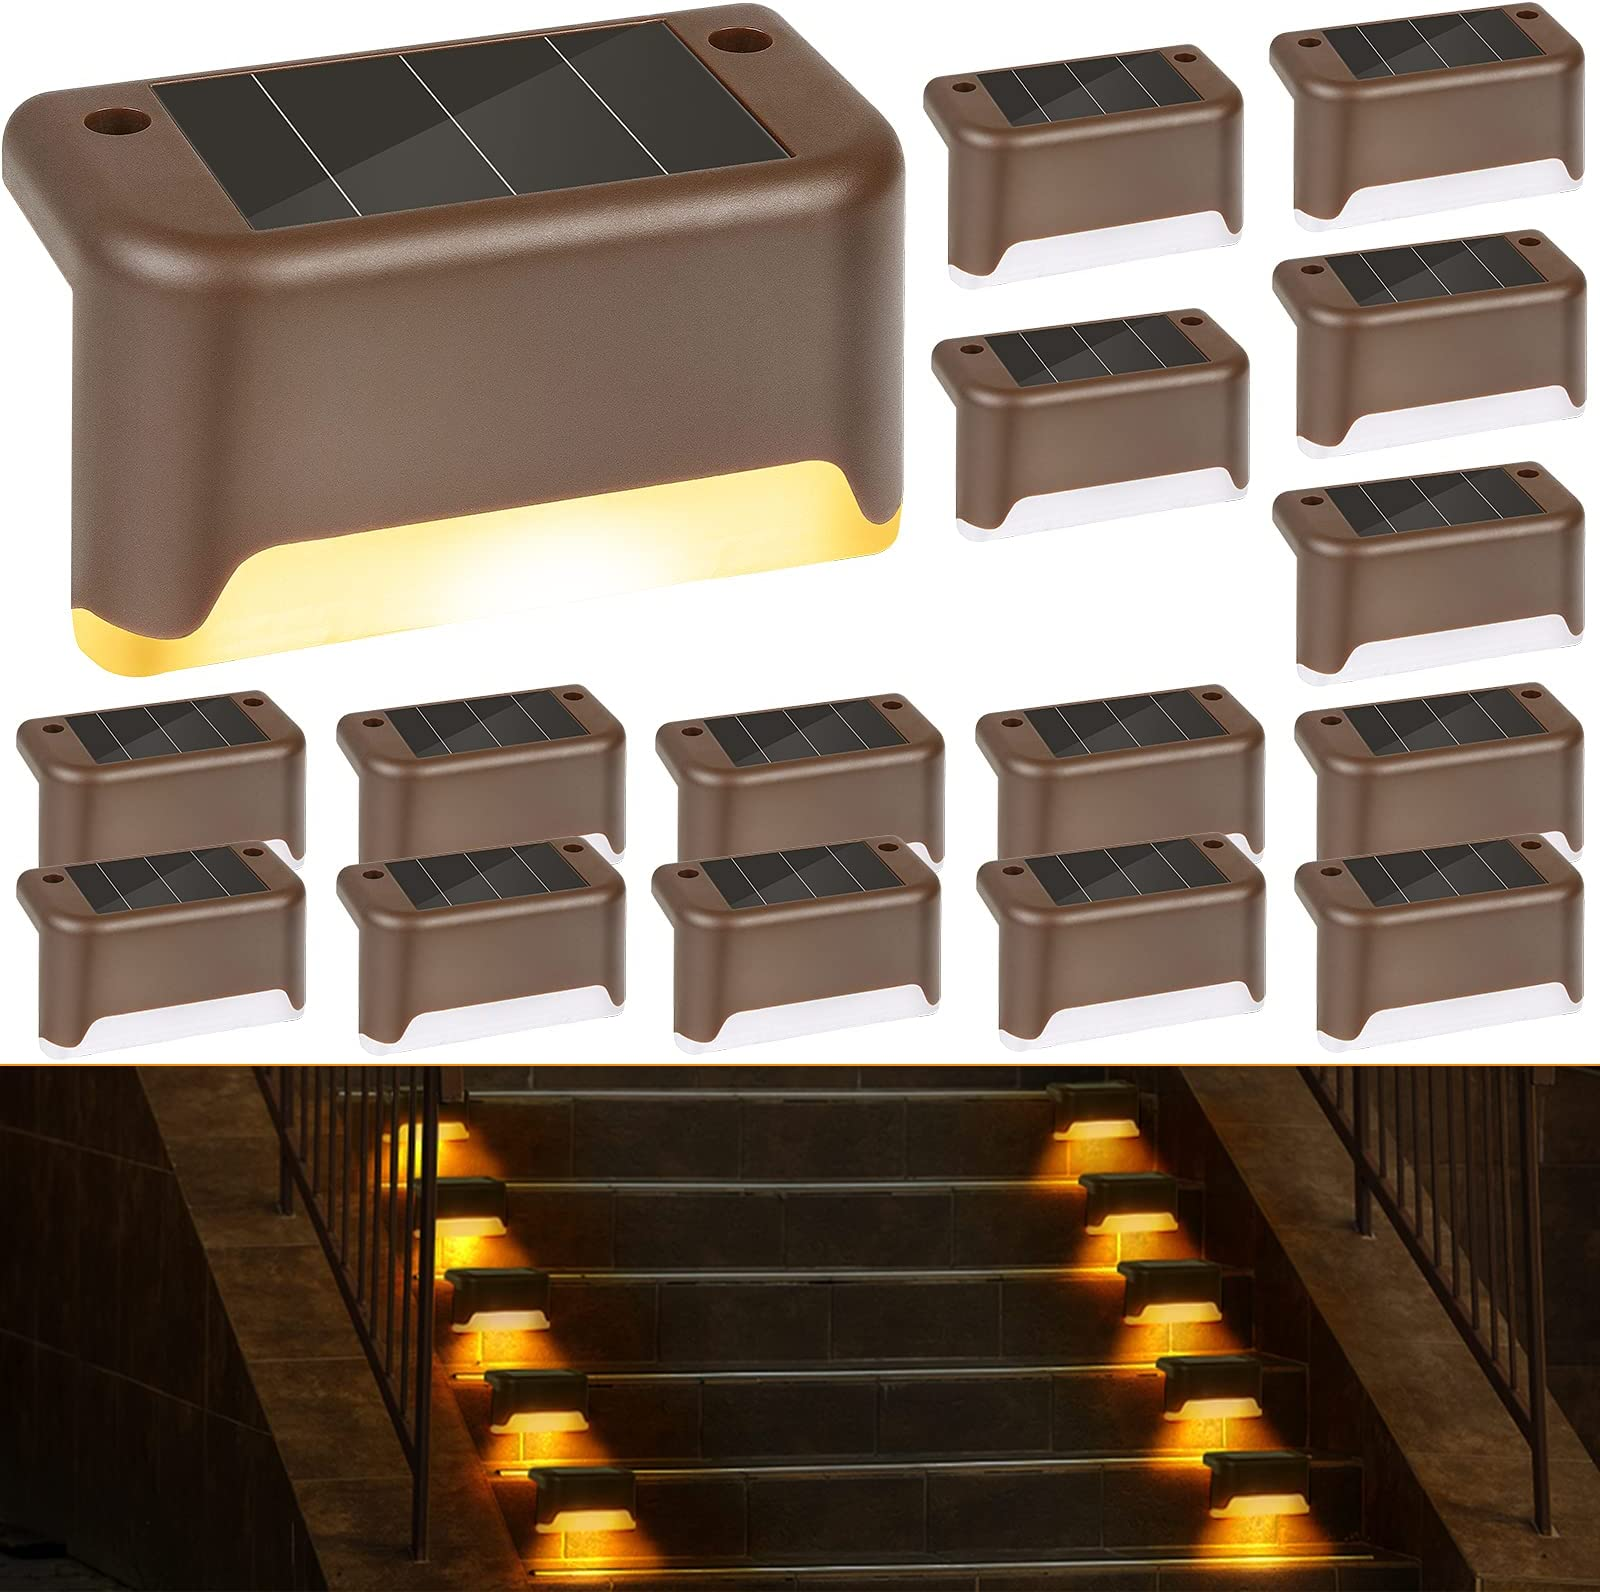 Fence Post Lights Yard Warm White Pathway Steps Fence Solar Step Light ZSZMFH 2 Pack Solar Deck Lights Auto On//Off Outdoor LED Waterproof Lighting for Patio